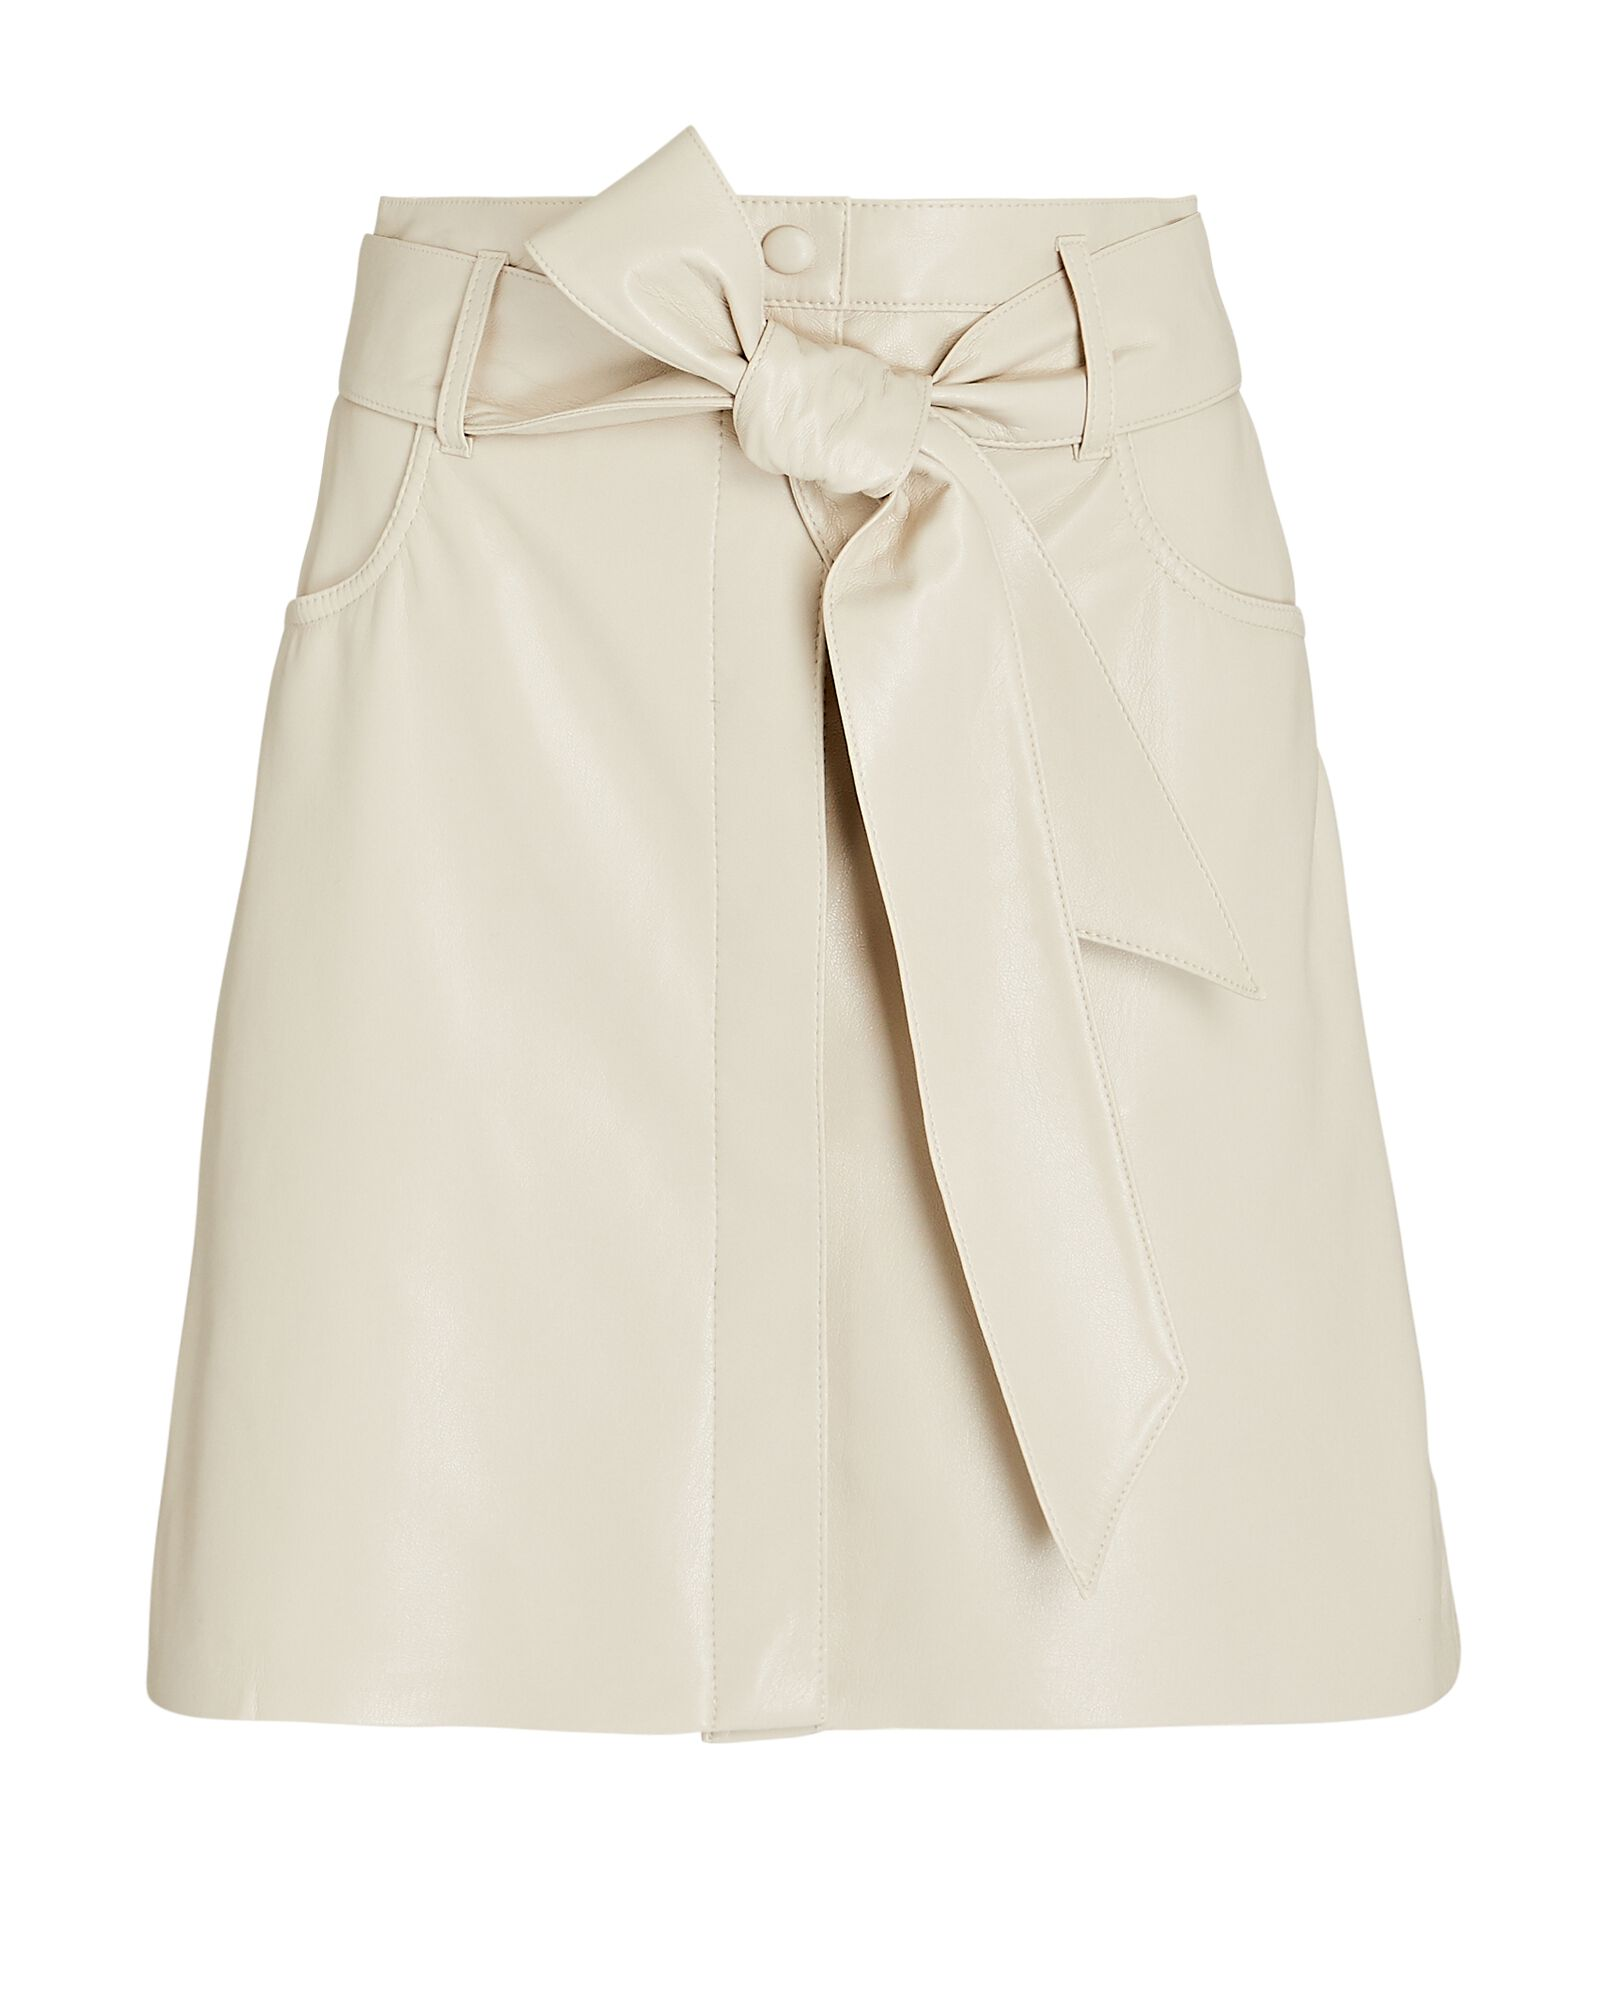 Meda Vegan Leather Mini Skirt, IVORY, hi-res